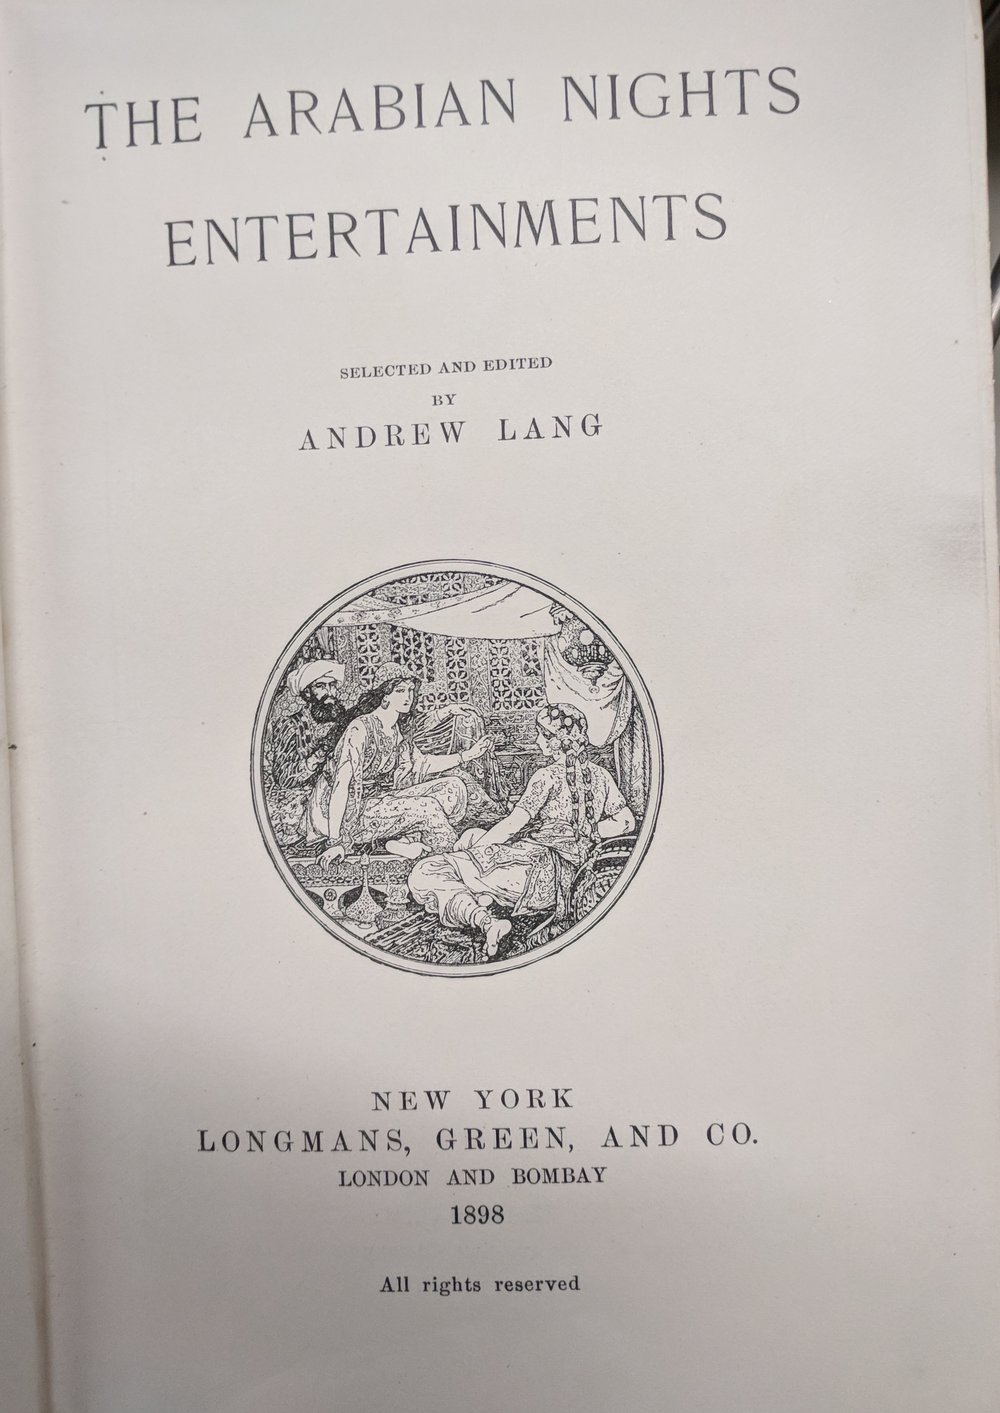 The Arabian nights' entertainments  selected and edited by Andrew Lang (New York; London: Longmans Green & Co., 1898)